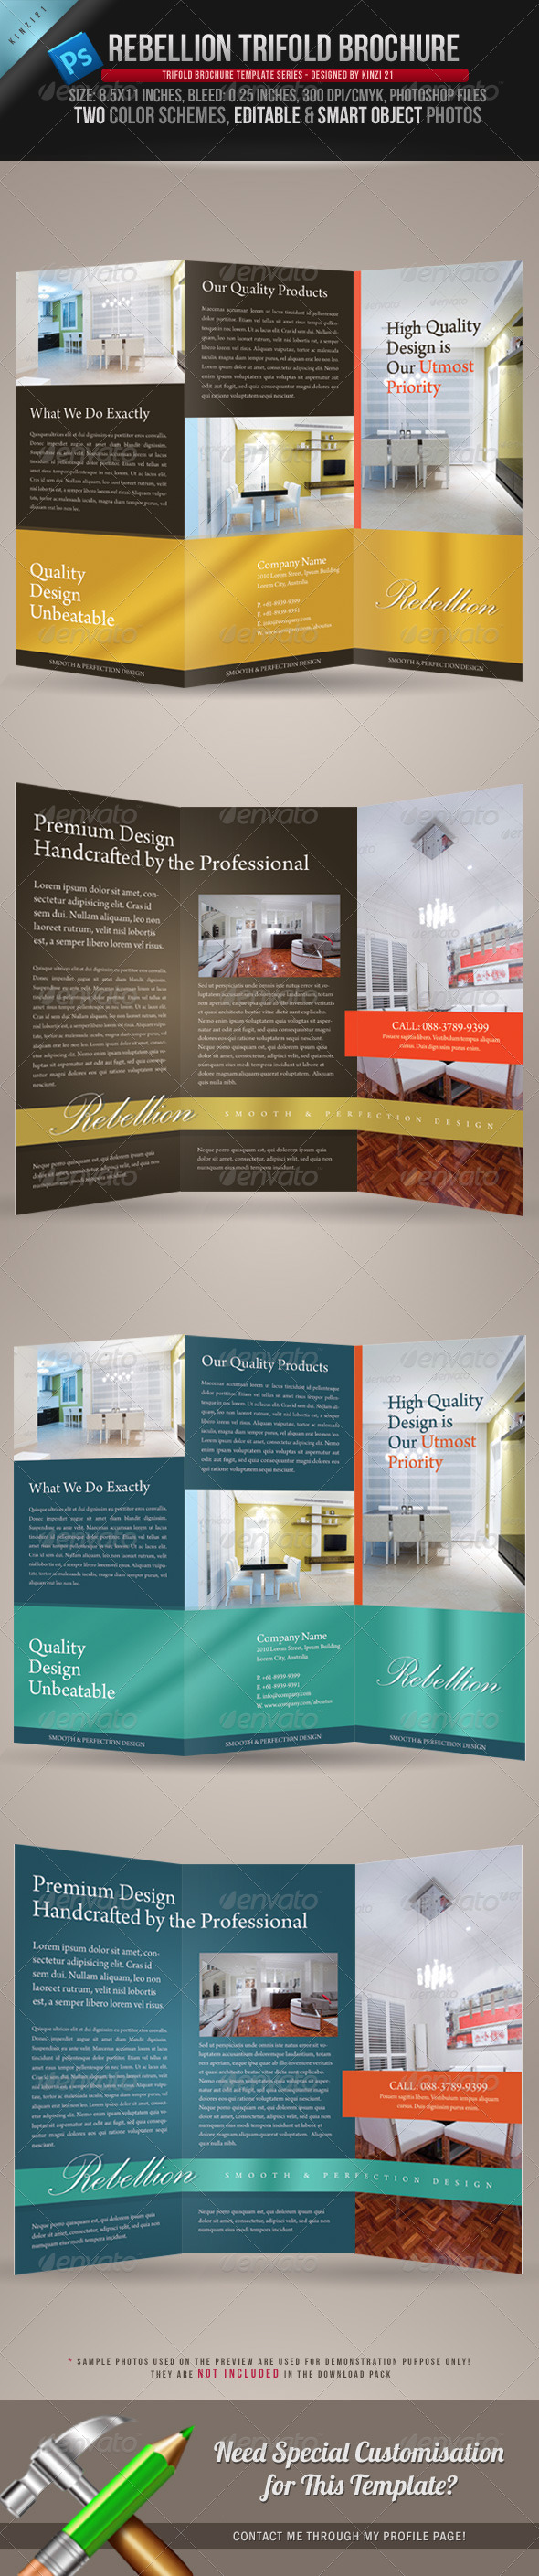 Rebellion Trifold Brochure PSD Template By Kinzi GraphicRiver - Brochure photoshop template